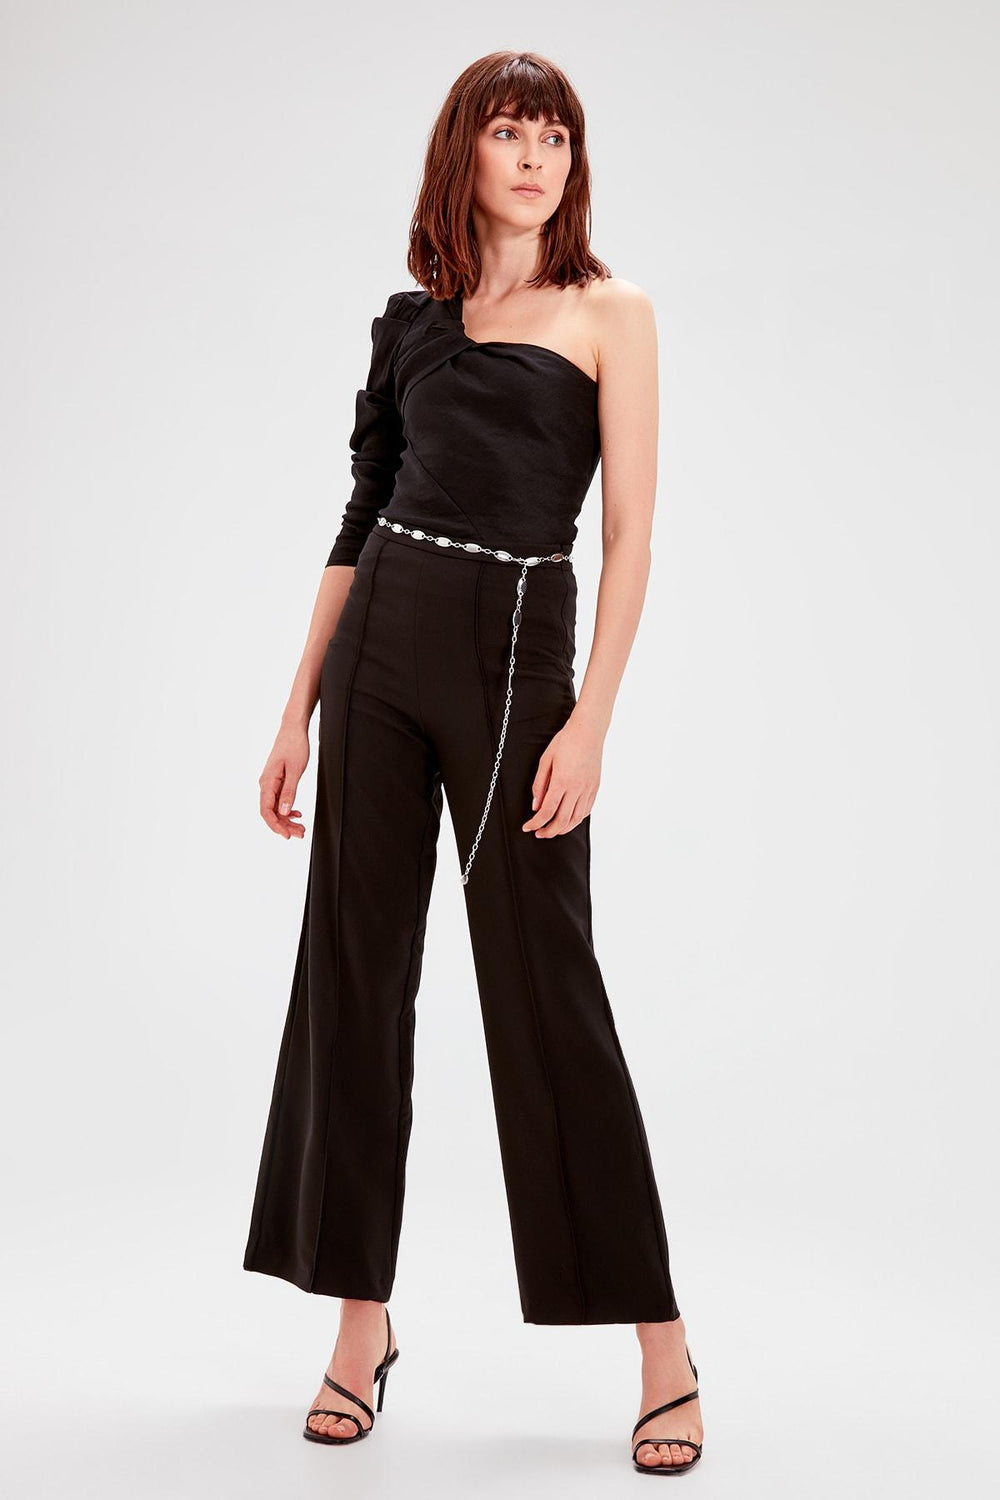 Miss Zut Miss Zut Black Basic Pants Miss Zut &CO